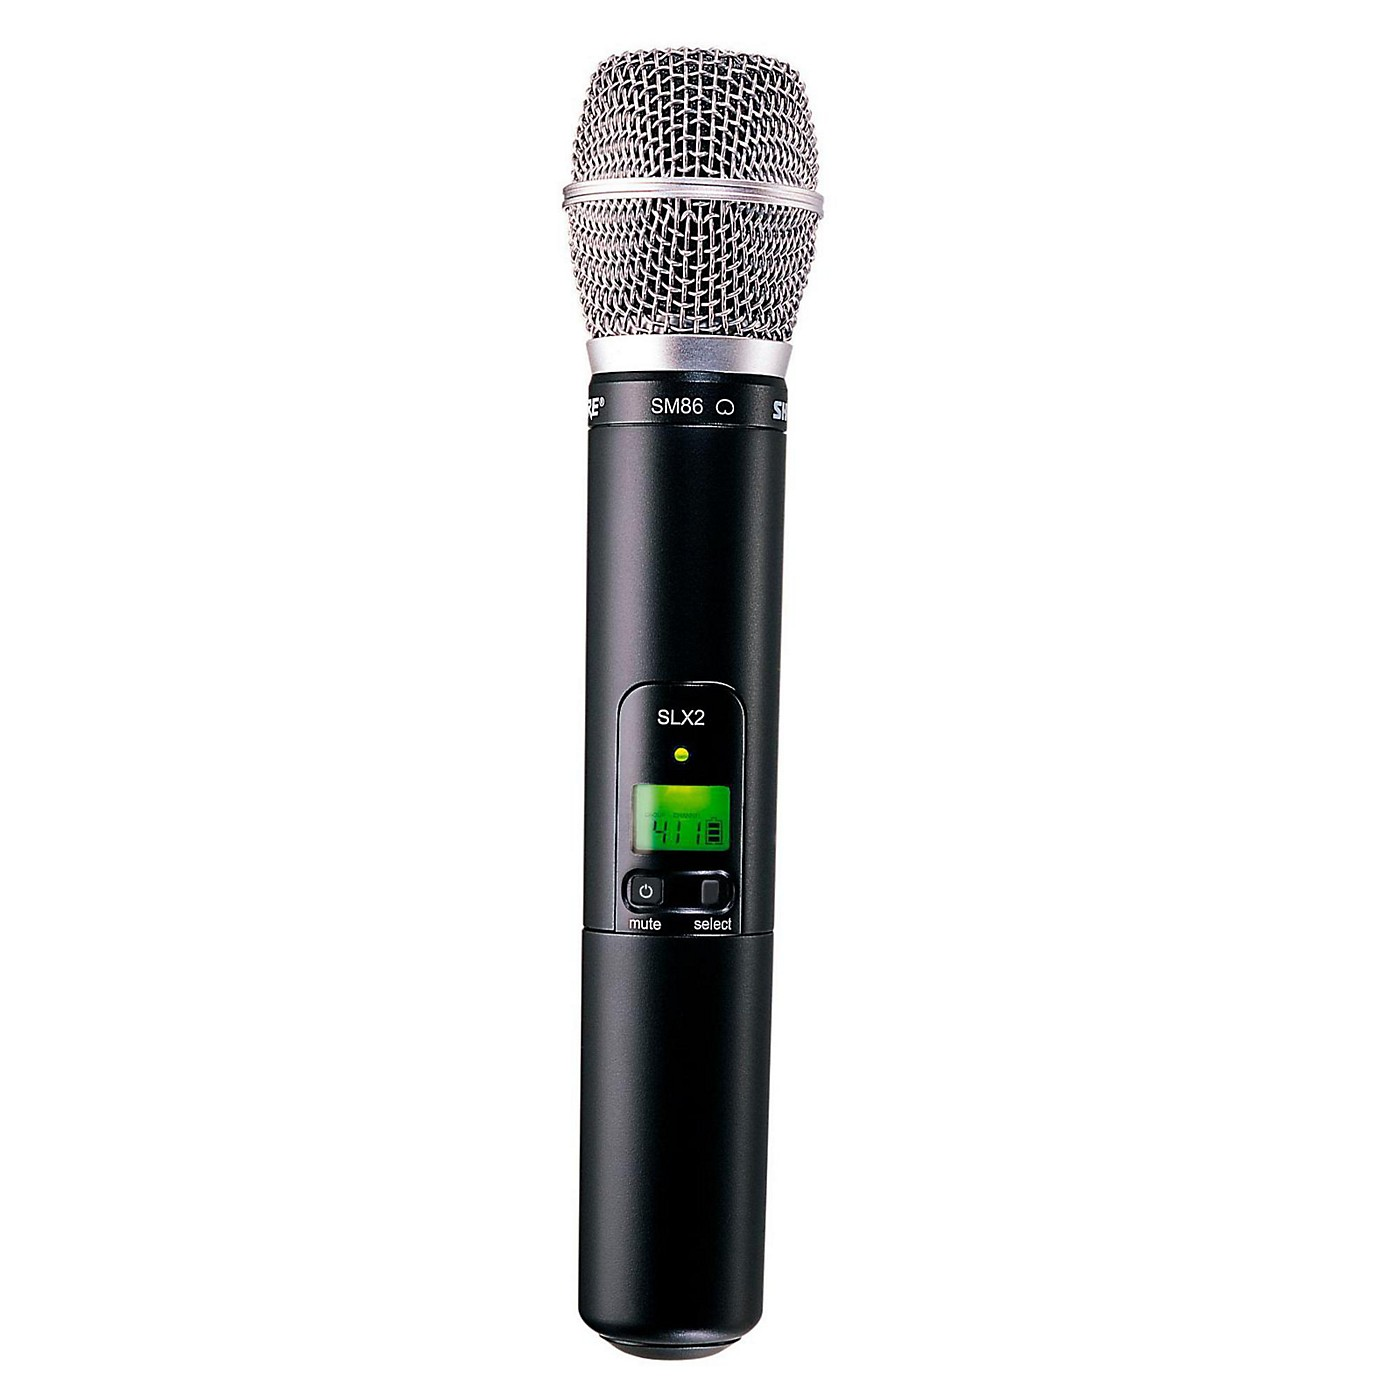 Shure SLX2/SM86 Wireless Handheld Transmitter Microphone thumbnail